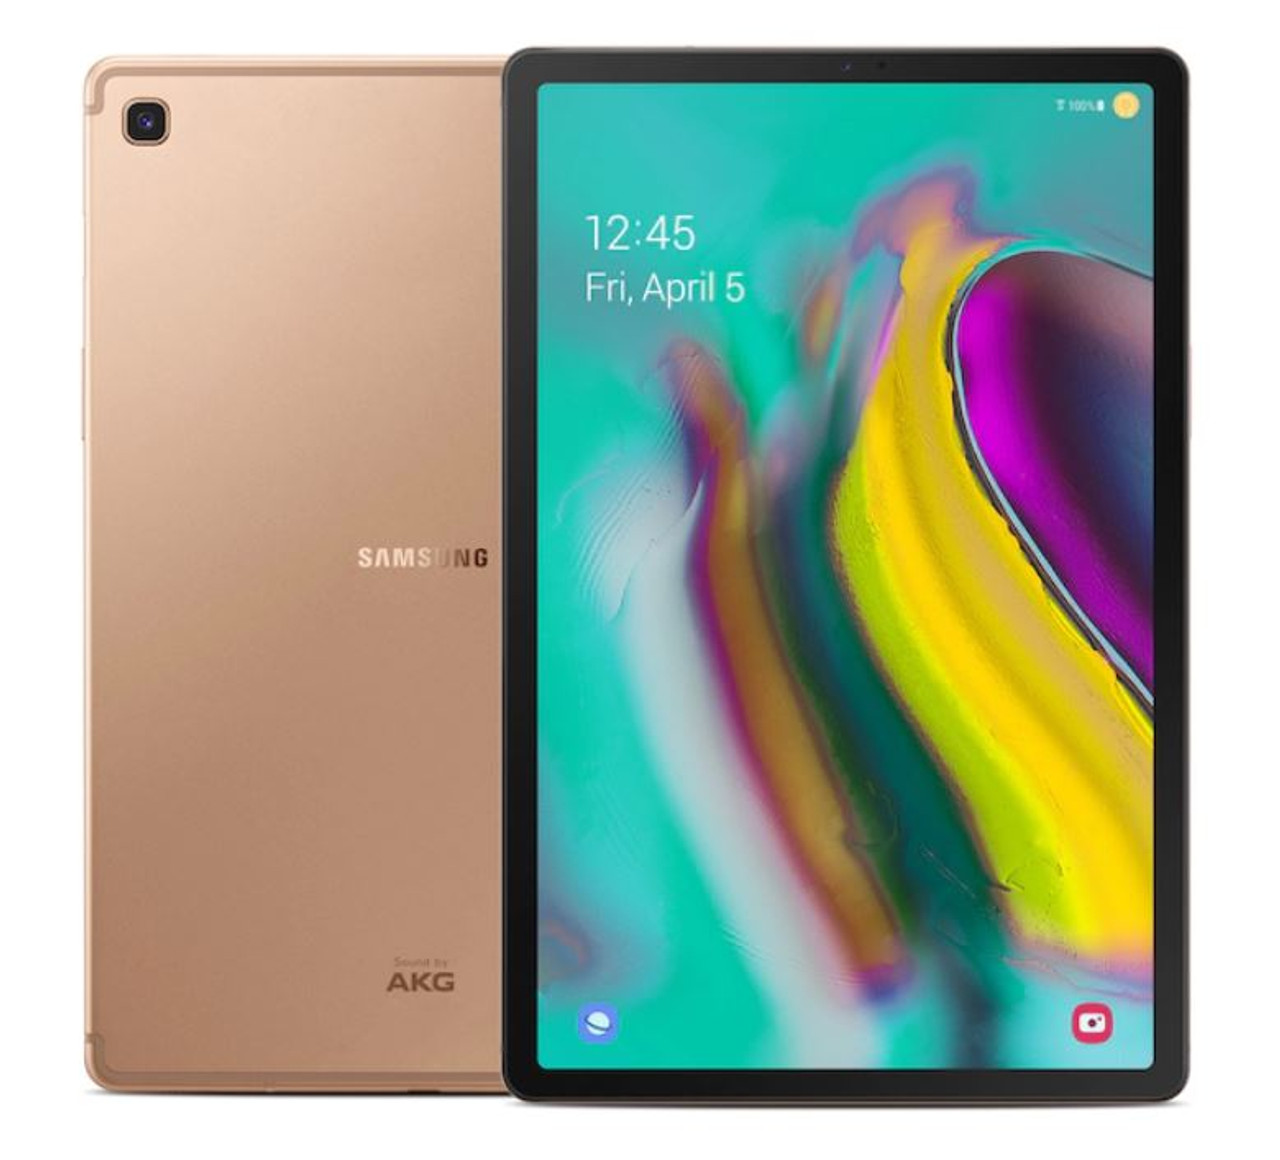 """Samsung SM-T720NZDLXAR-RB Gold 10.5"""" Galaxy Tab S5e 128GB WiFi Android Tablet- Certified Refurbished"""